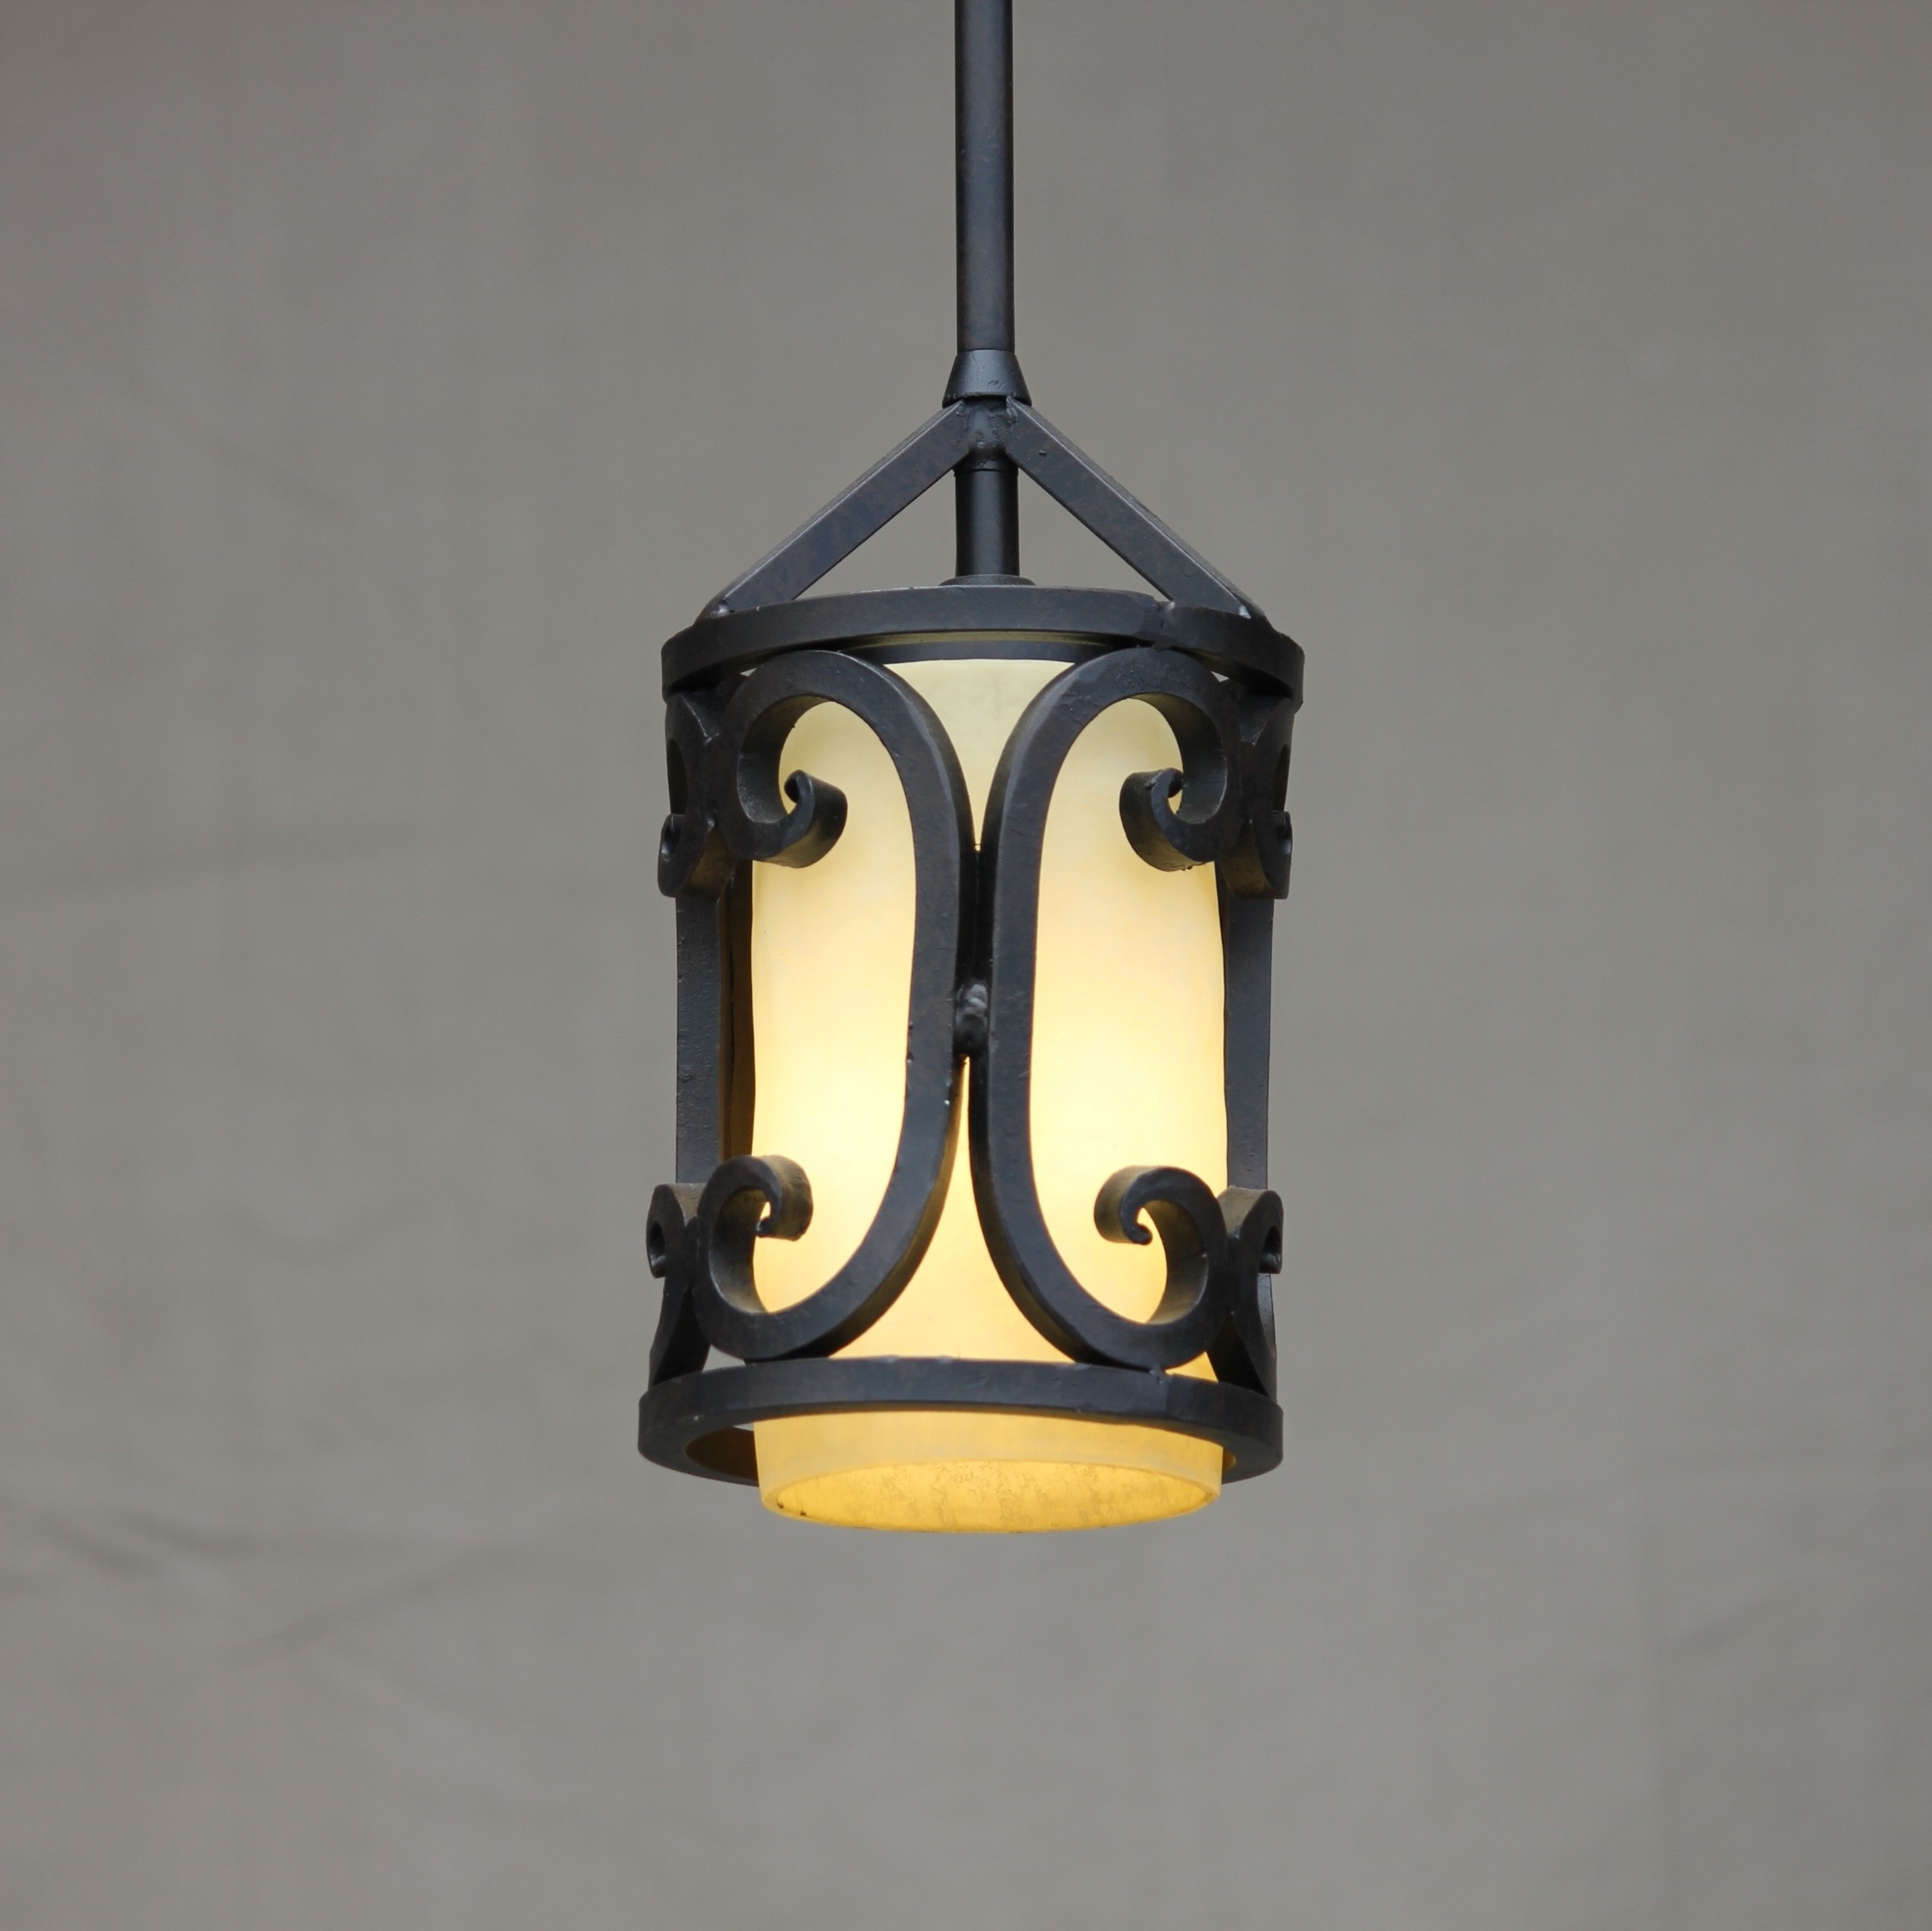 Popular Lights Of Tuscany Mini Pendant Lighting – Ceiling Fixtures – Fixtures Within Outdoor Iron Hanging Lights (View 15 of 20)